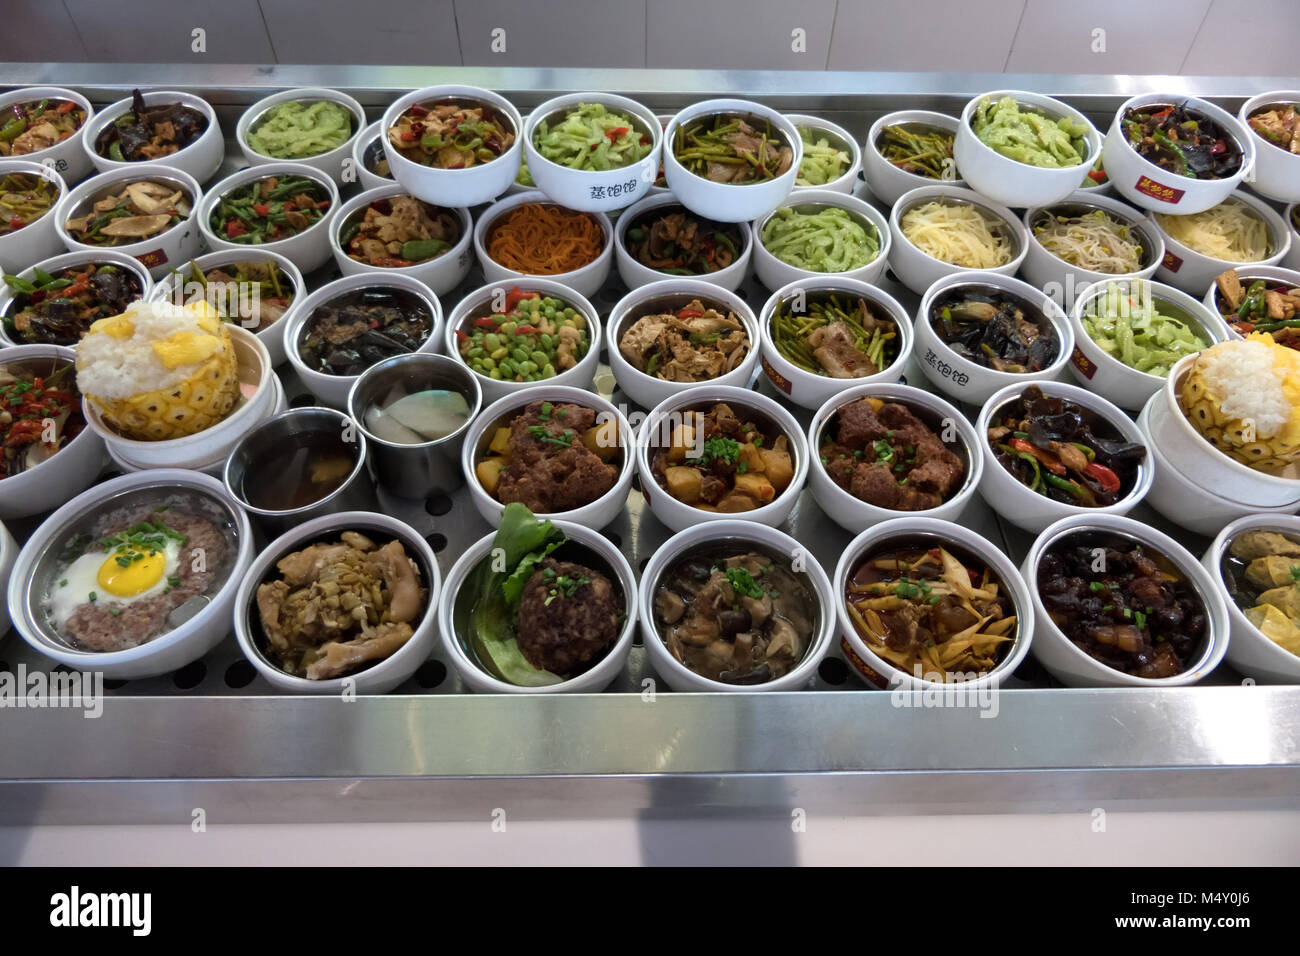 sichuan traditional food Stock Photos & sichuan traditional food ...